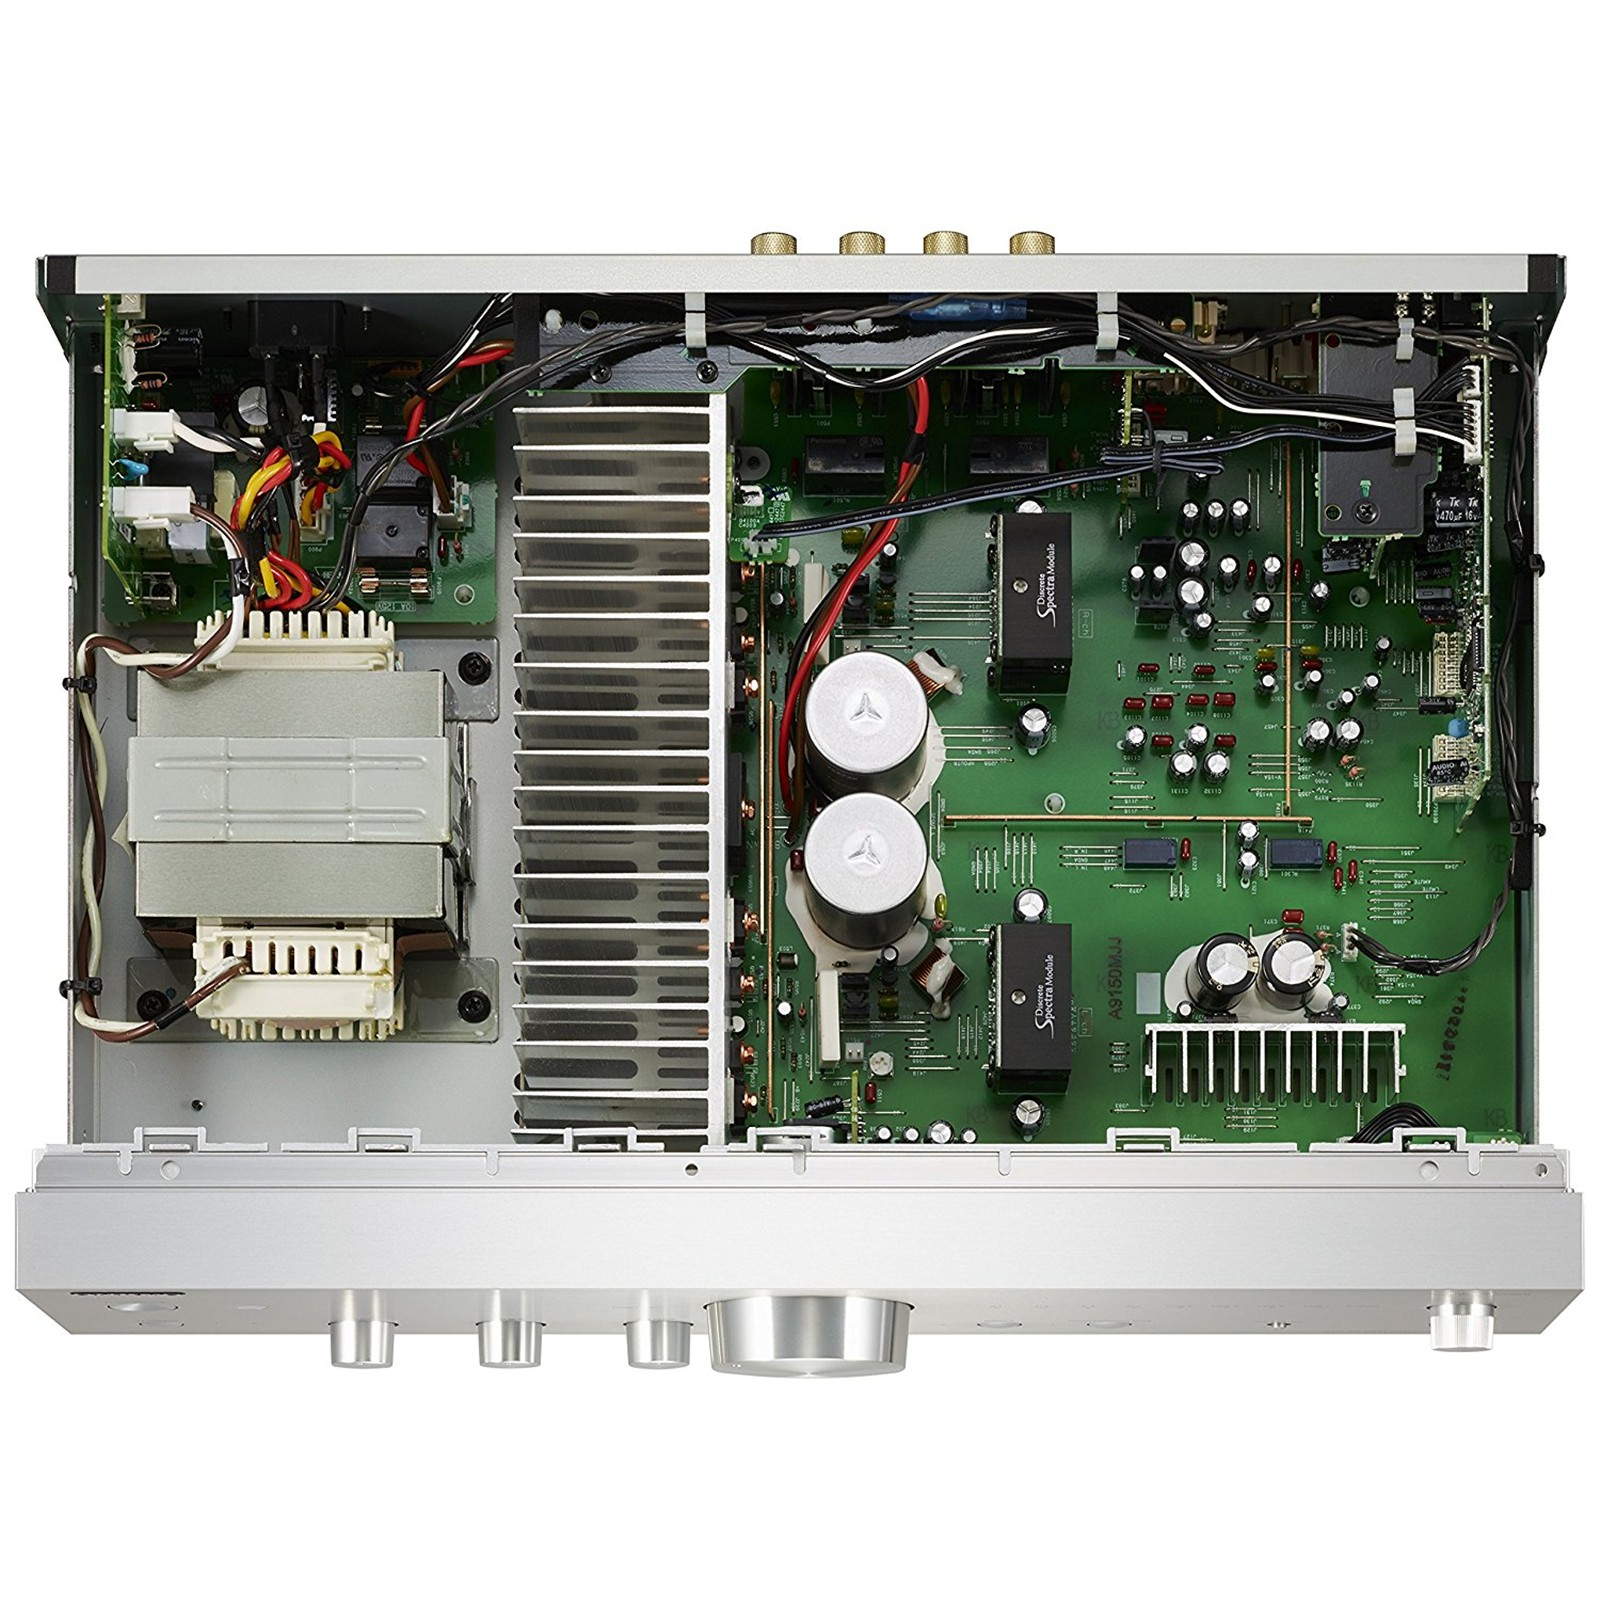 Buy The Onkyo A 9150 Integrated Stereo Amplifier High Current Motorola Hifi Power Circuit Design Grade Dac Didrc Filter Refined Amp With Discrete Spectramodule Silver